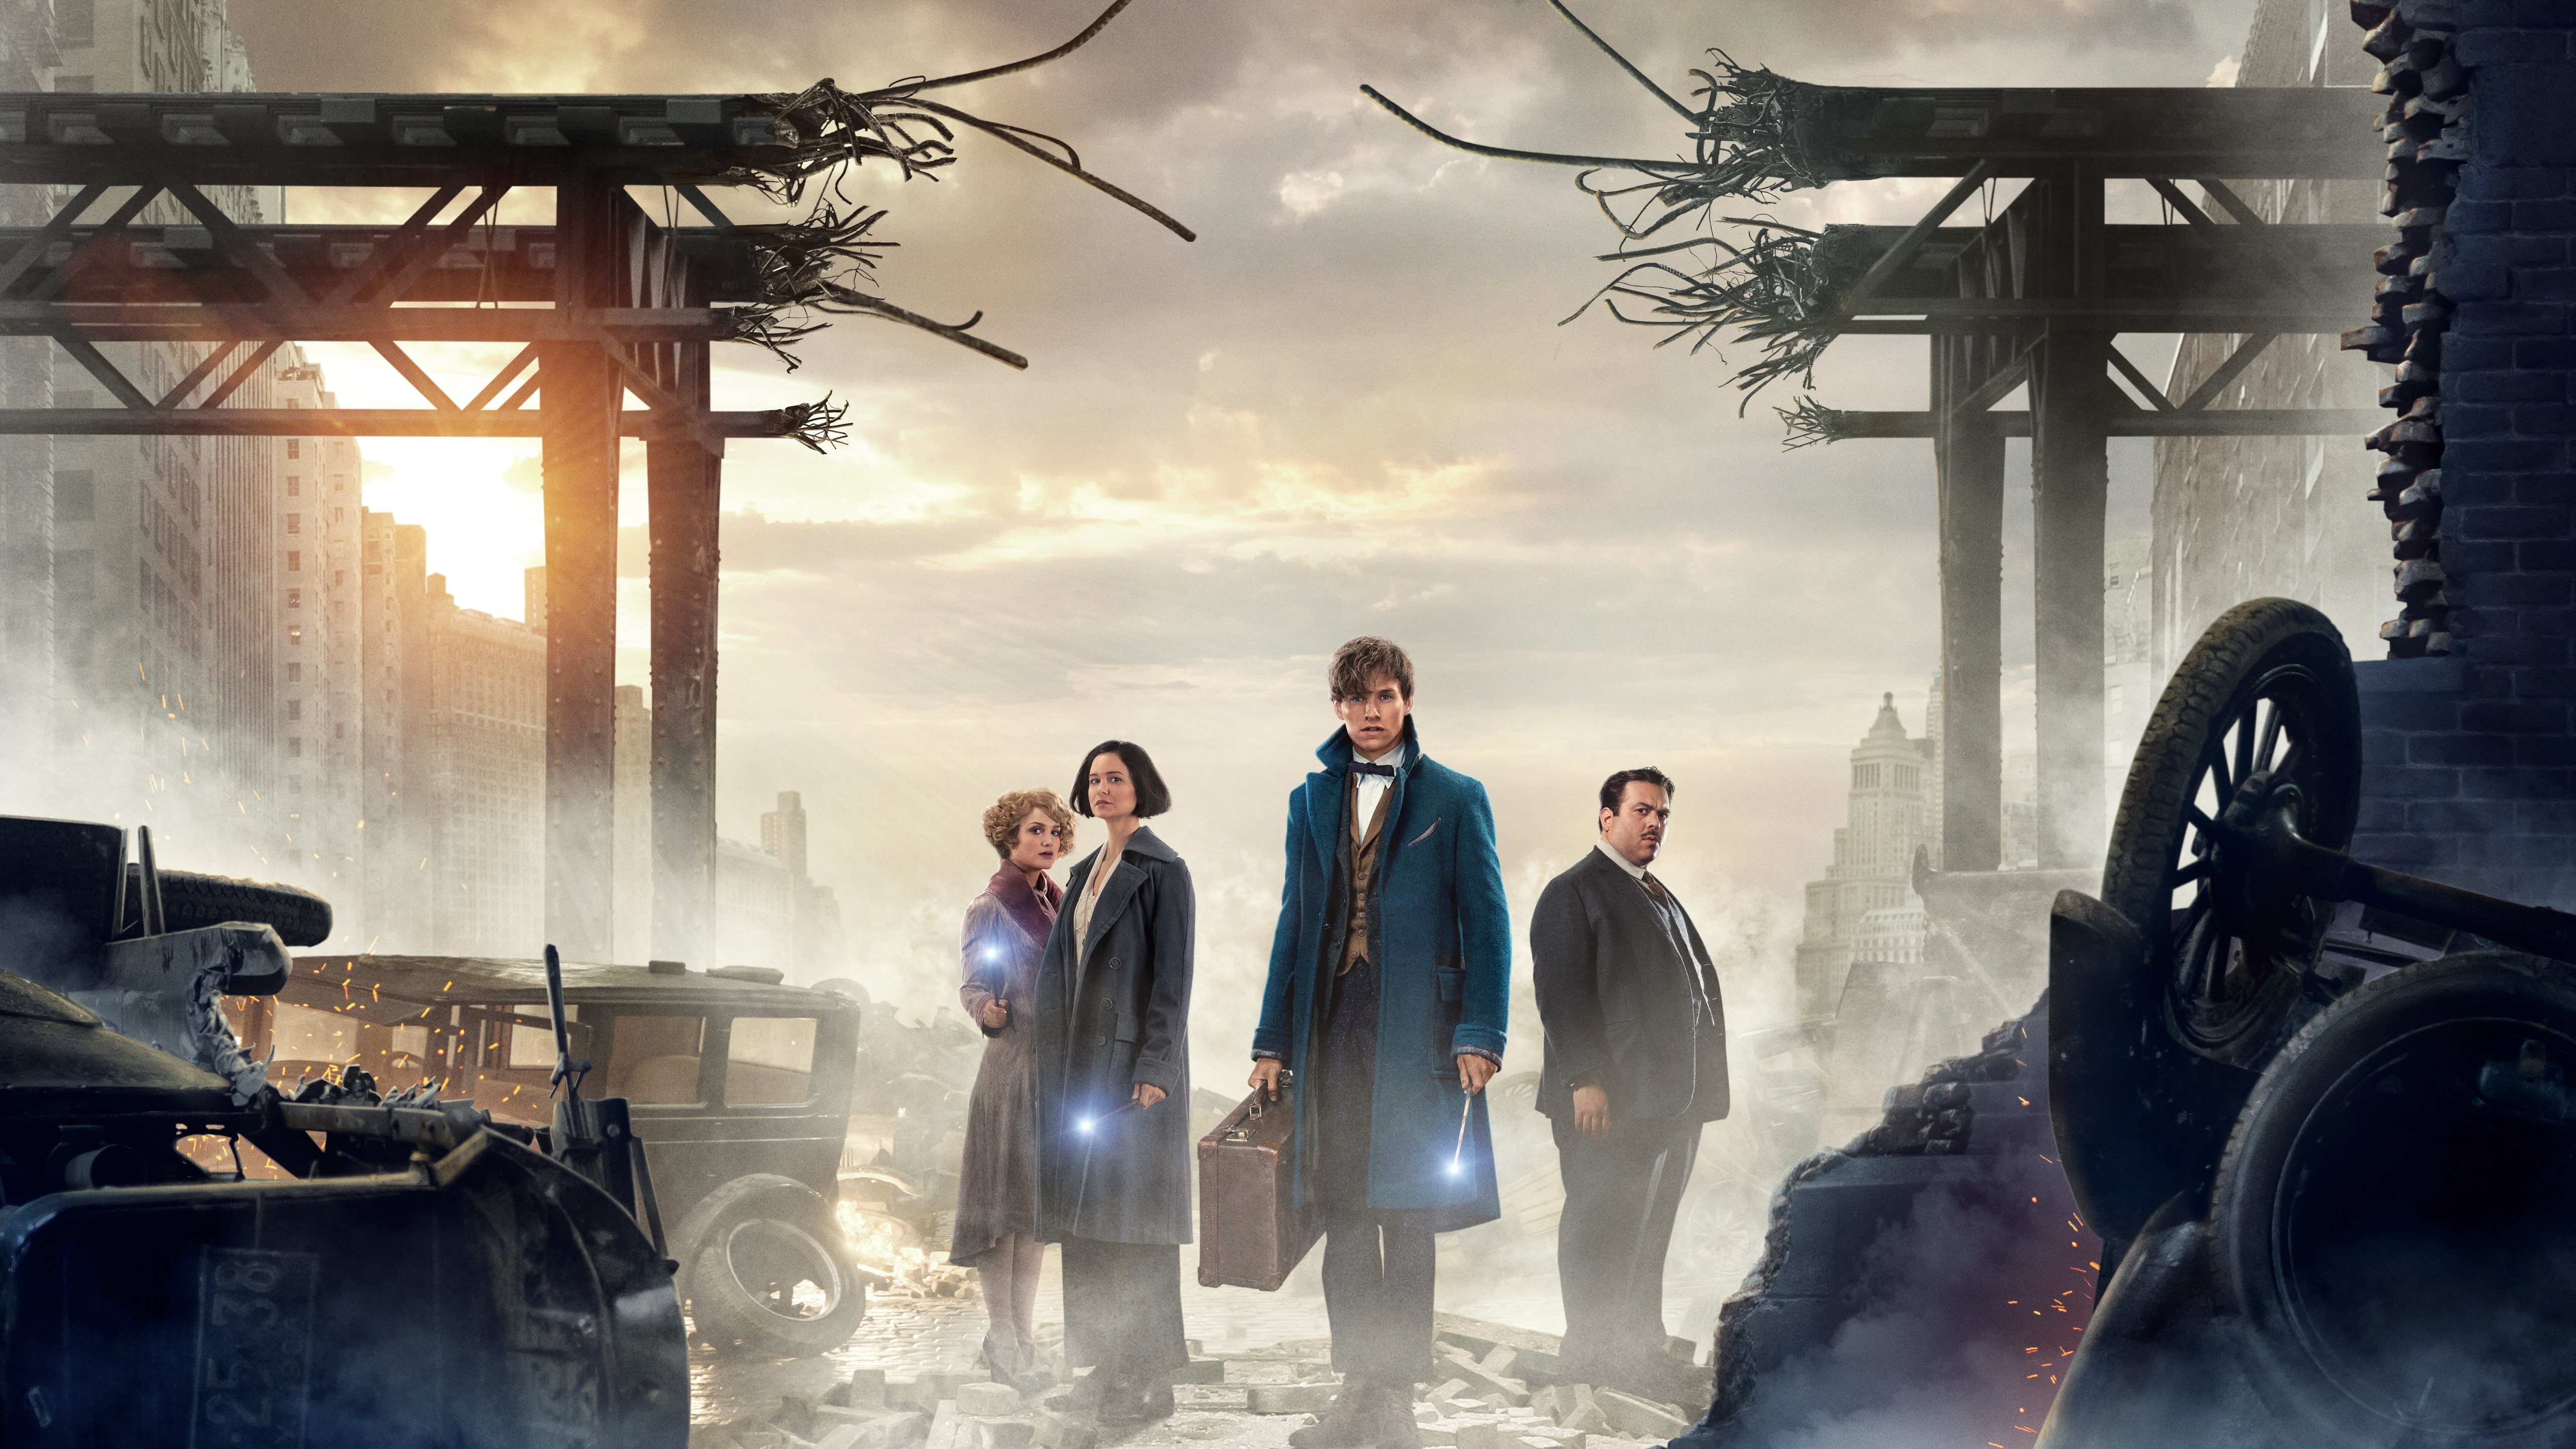 Wallpapers Cars Disney Hd Fantastic Beasts And Where To Find Them 4k 2016 Wallpapers